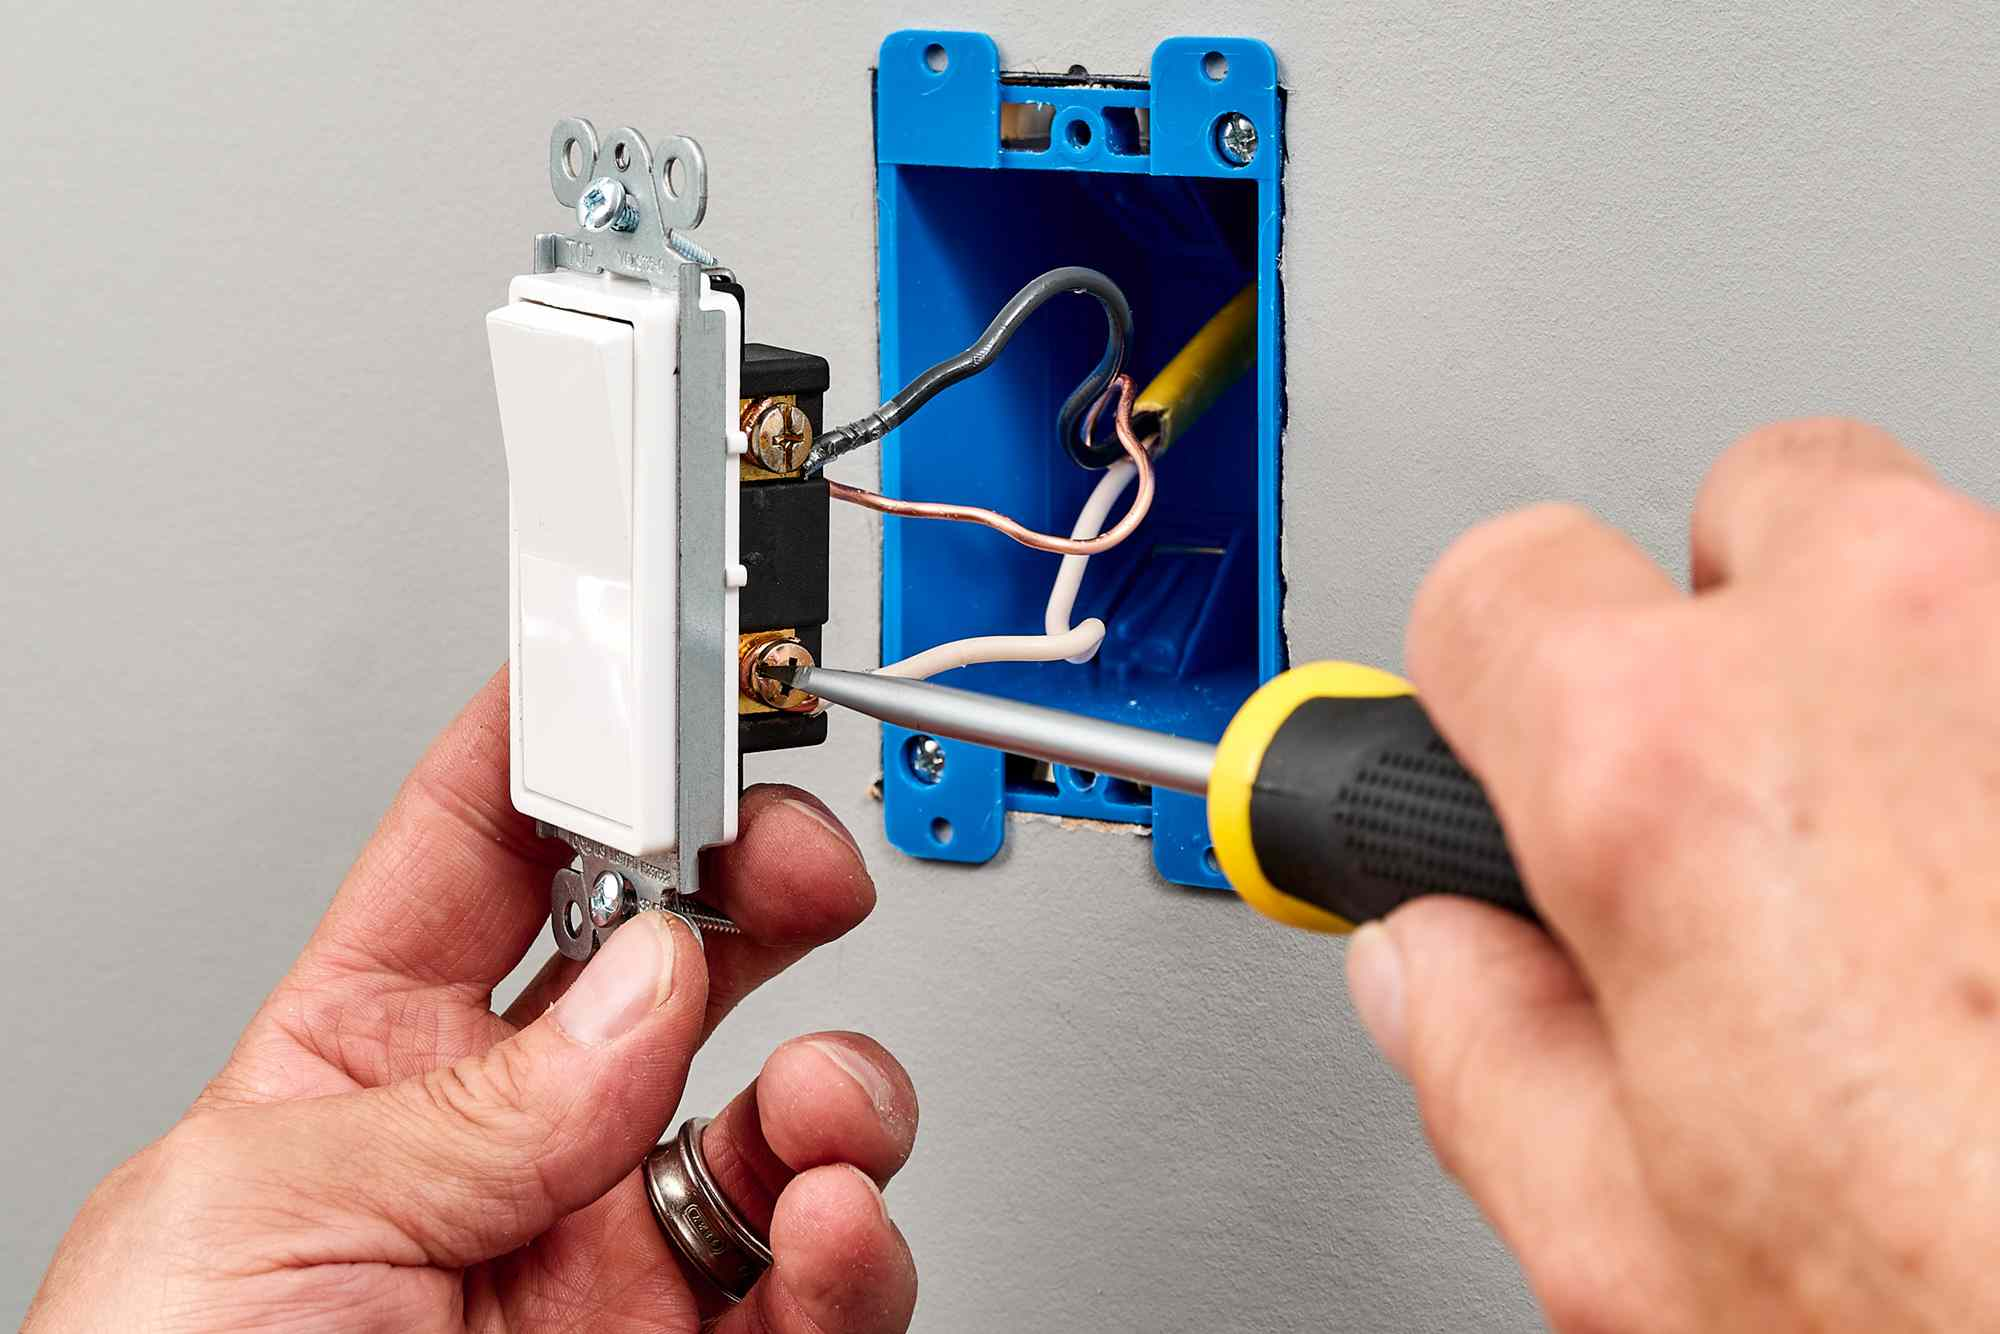 Ground and hot wires screwed into screw terminal of single-pole switch with screwdriver